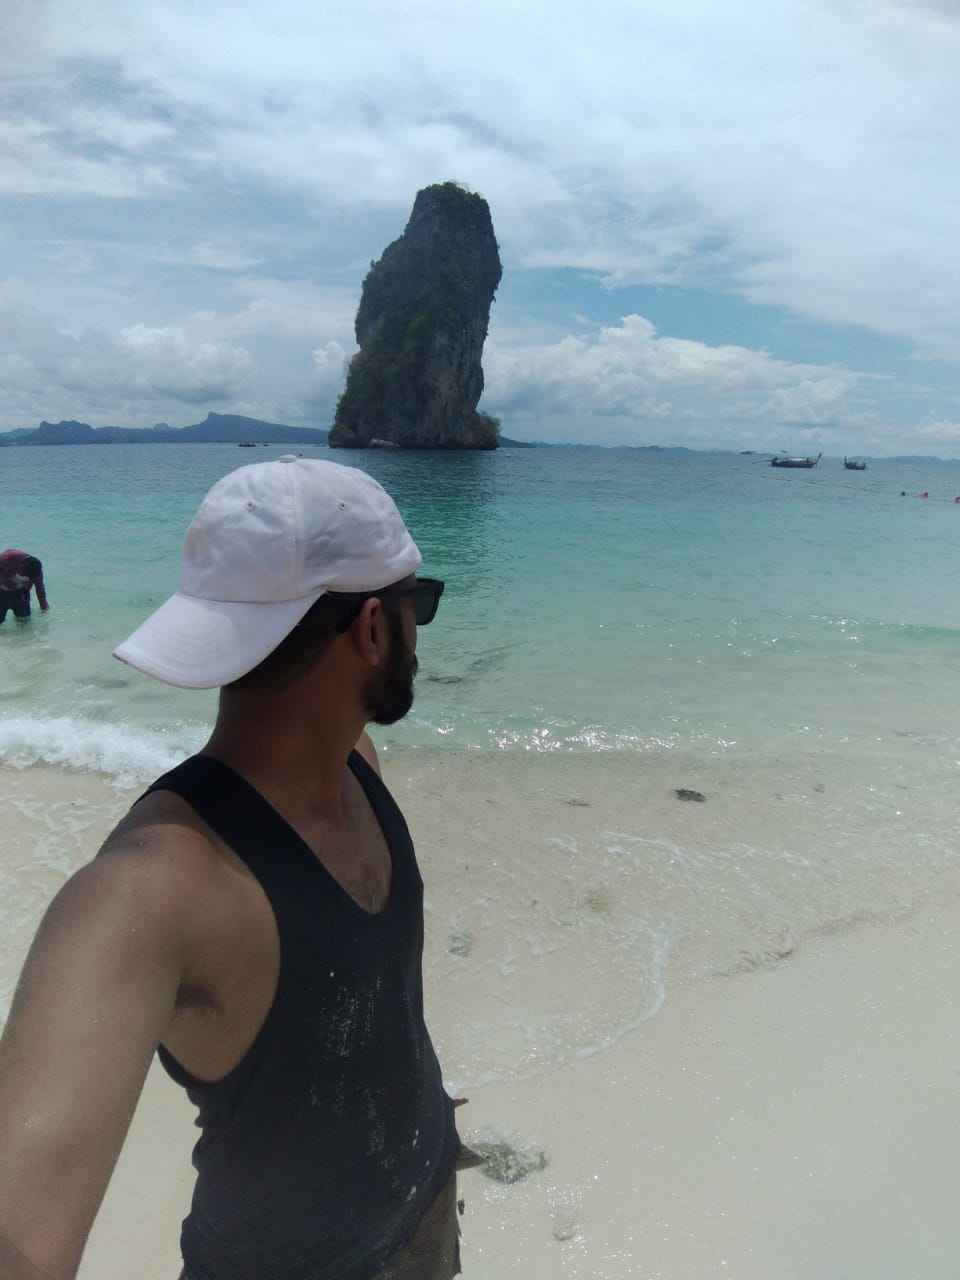 koh poda island, Krabi, Thailand. One of the best island for party, sea food and my fav Thai beer.